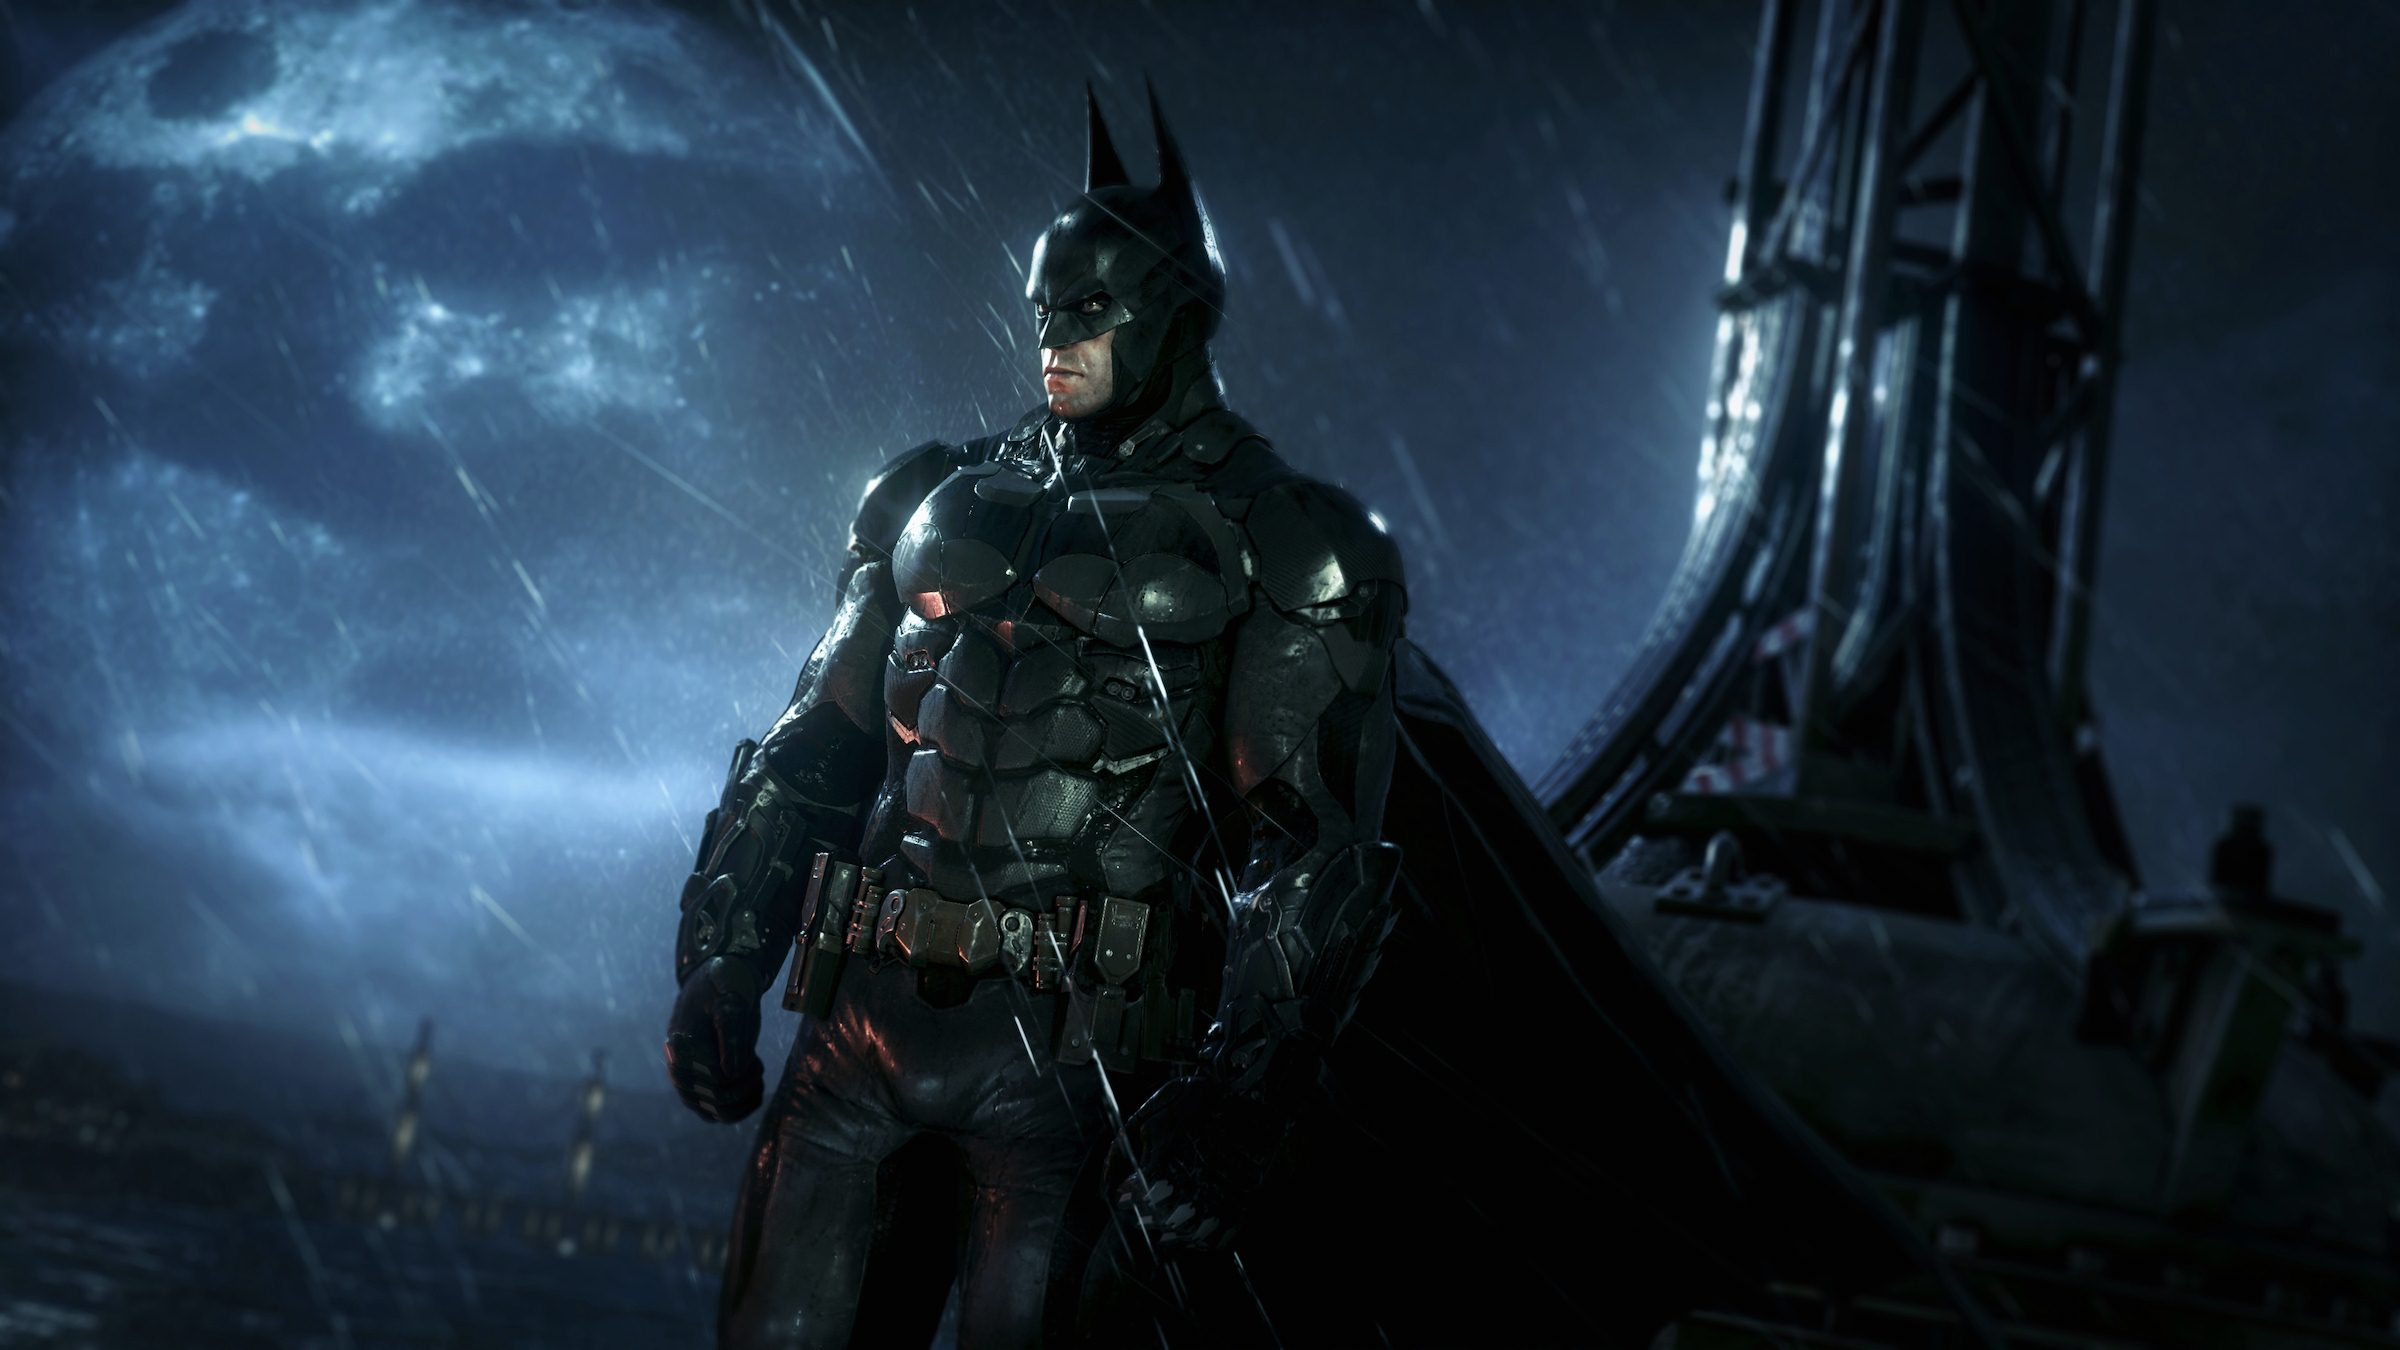 Transformers Wallpaper Hd For Android Batman Arkham Knight Hd Wallpapers Free Download